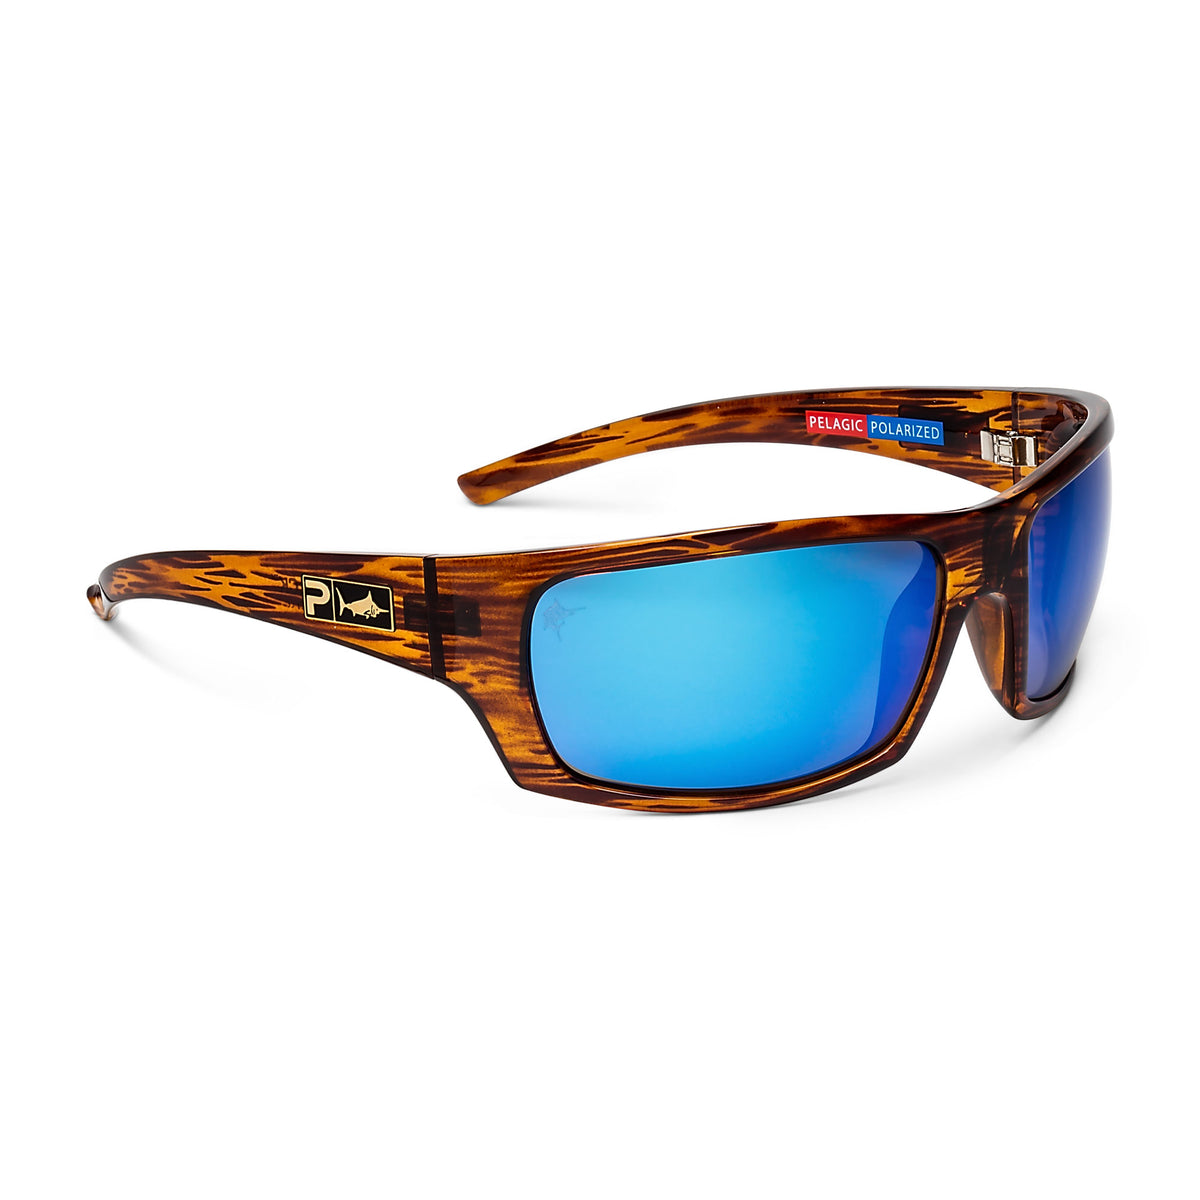 The Mack - Polarized Mineral Glass™ Big Image - 1